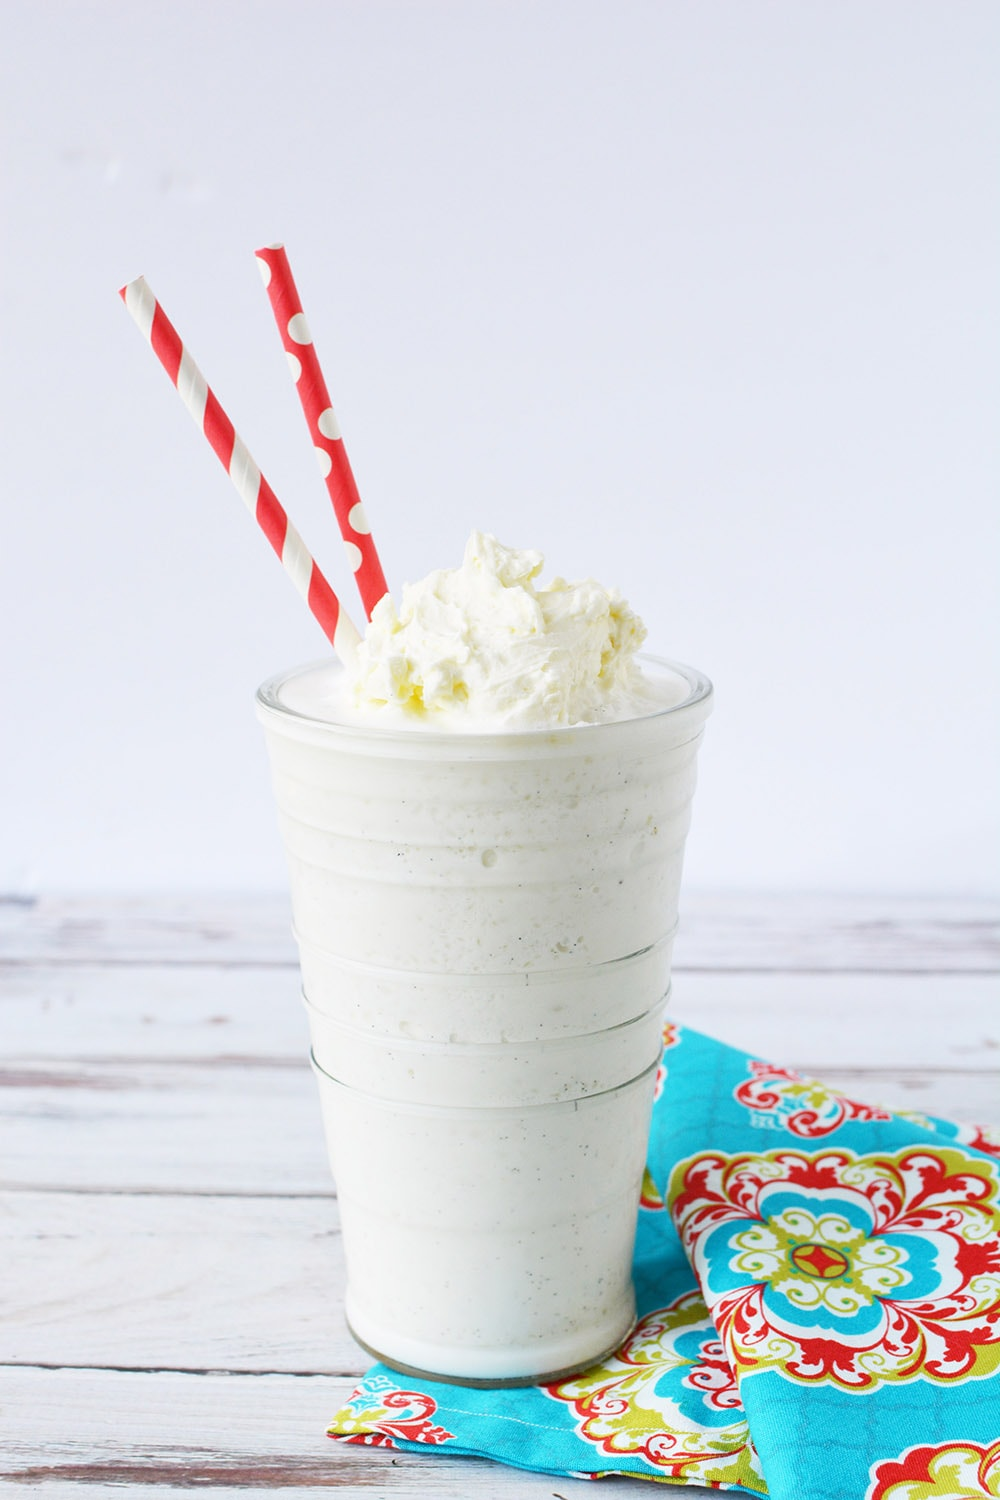 Vanilla bean frappuccino topped with whipped cream in a glass